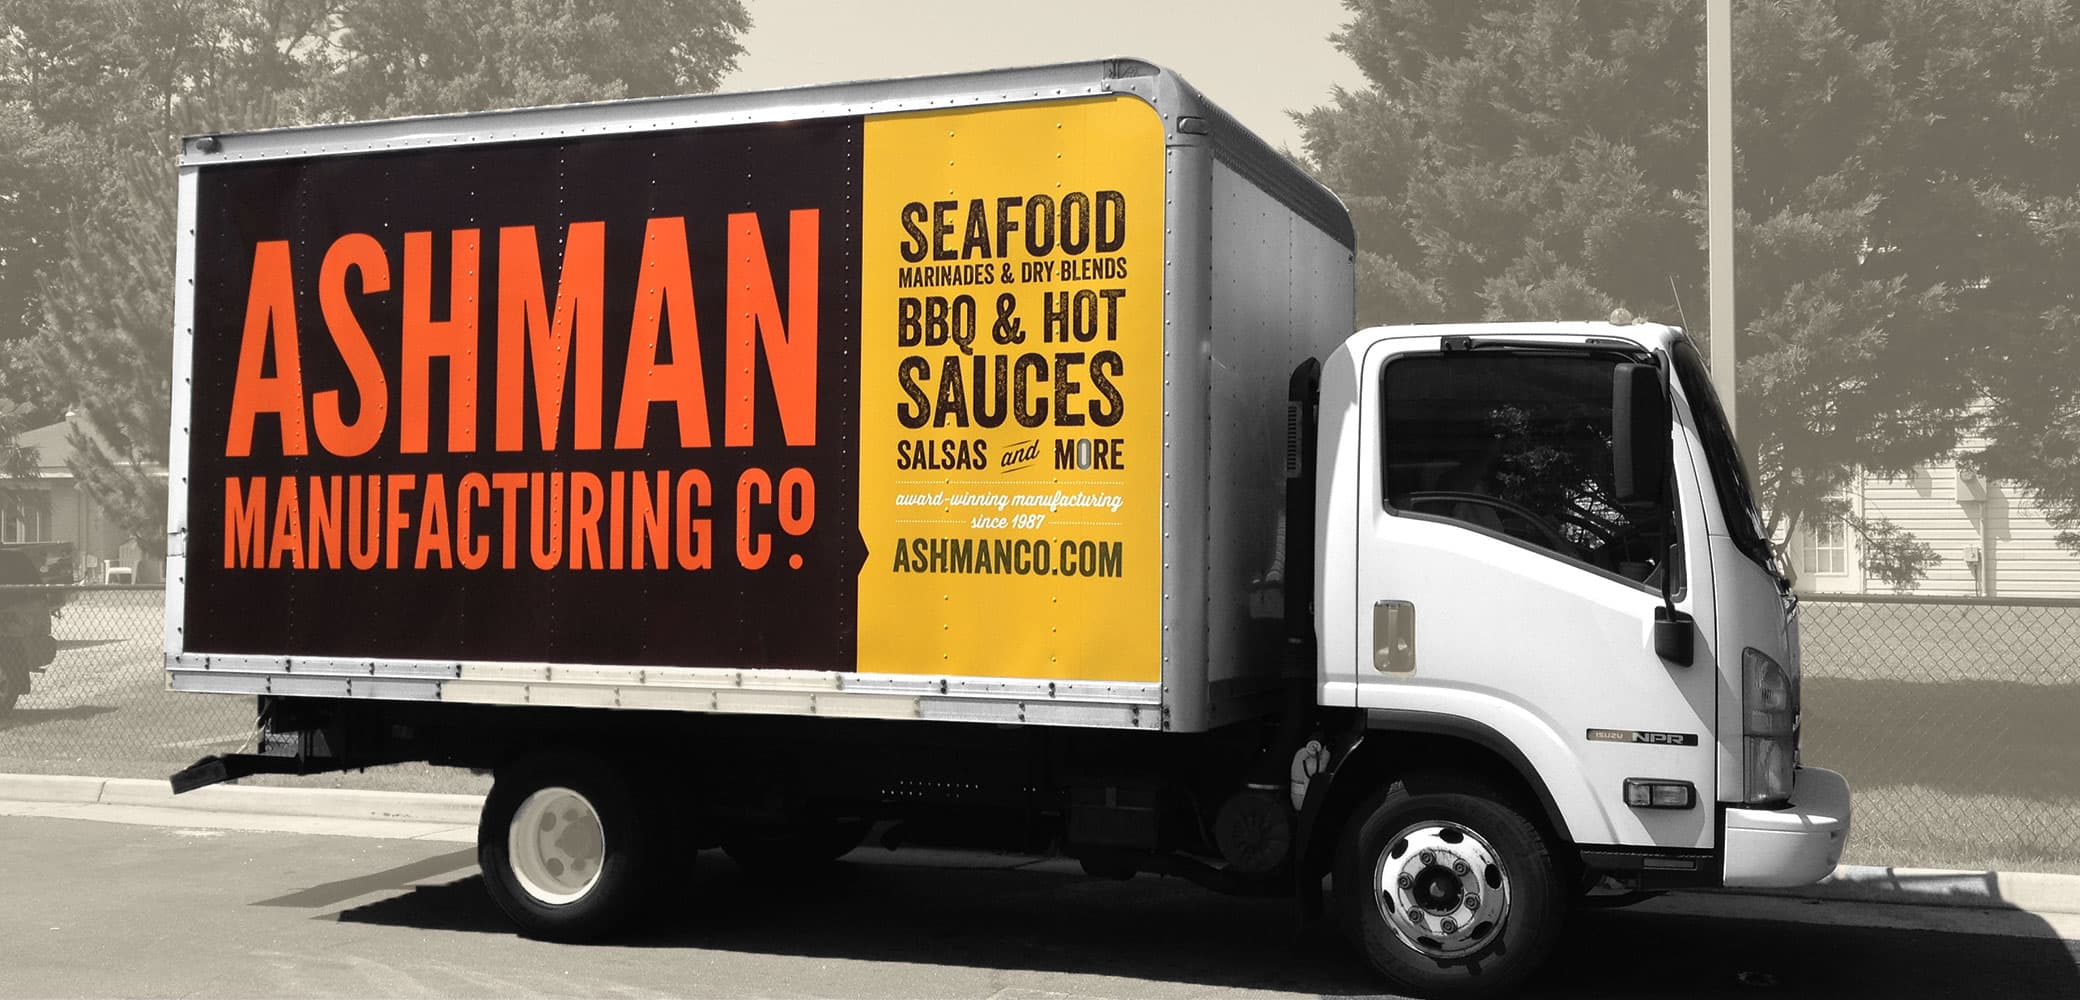 Ashman Manufacturing Truck Wrap Design by Red Chalk Studios